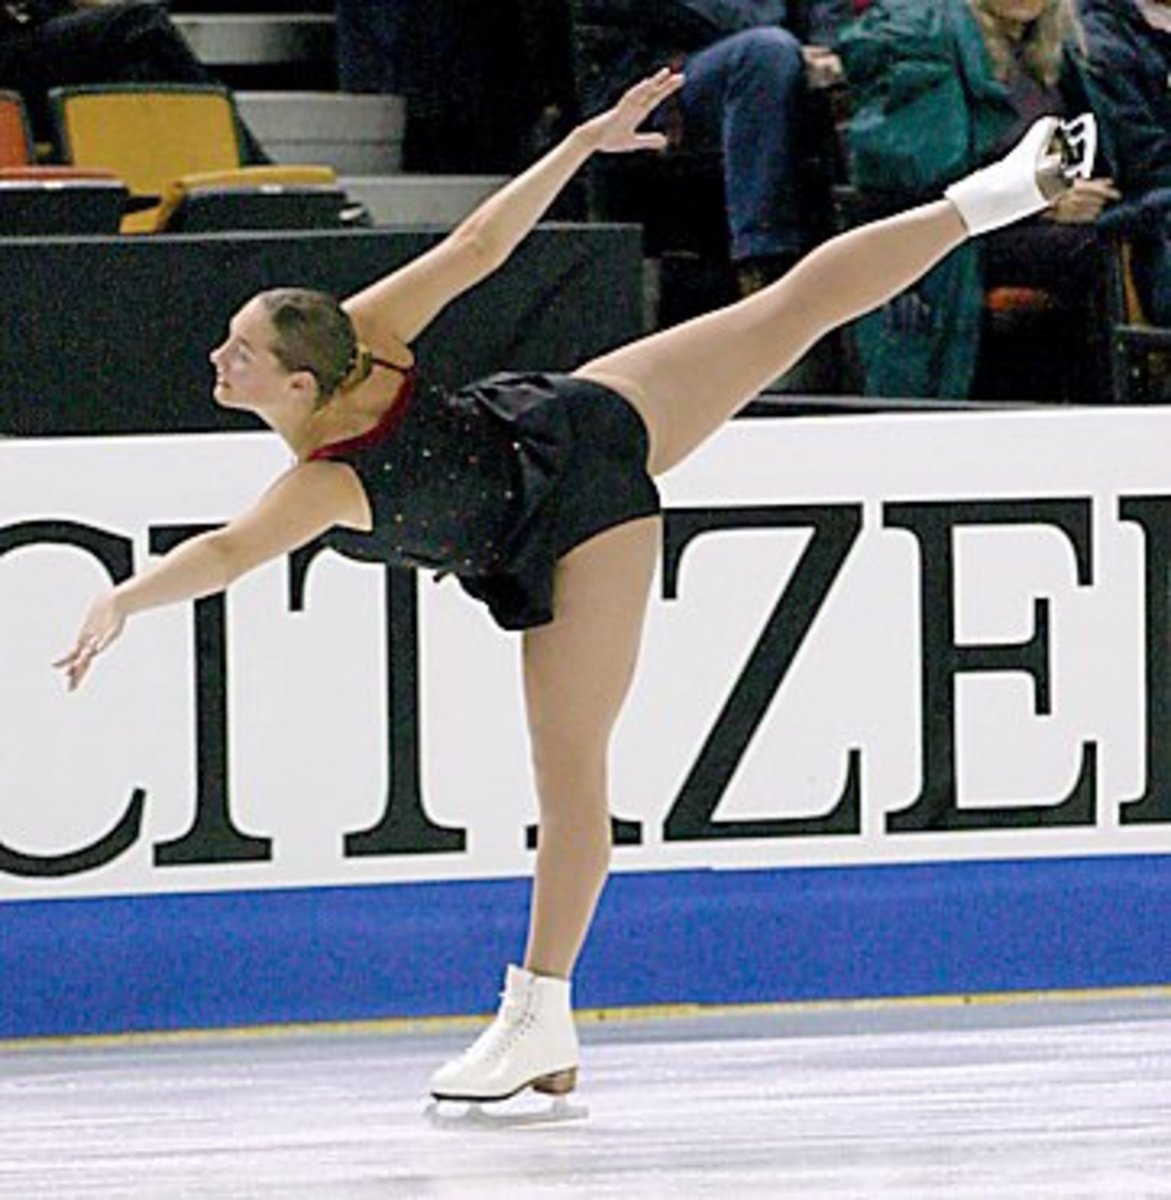 This is a move called the spiral. The skater's free leg must reach hip level or higher for it to be considered a good position. The most flexible skaters basically do a standing split.